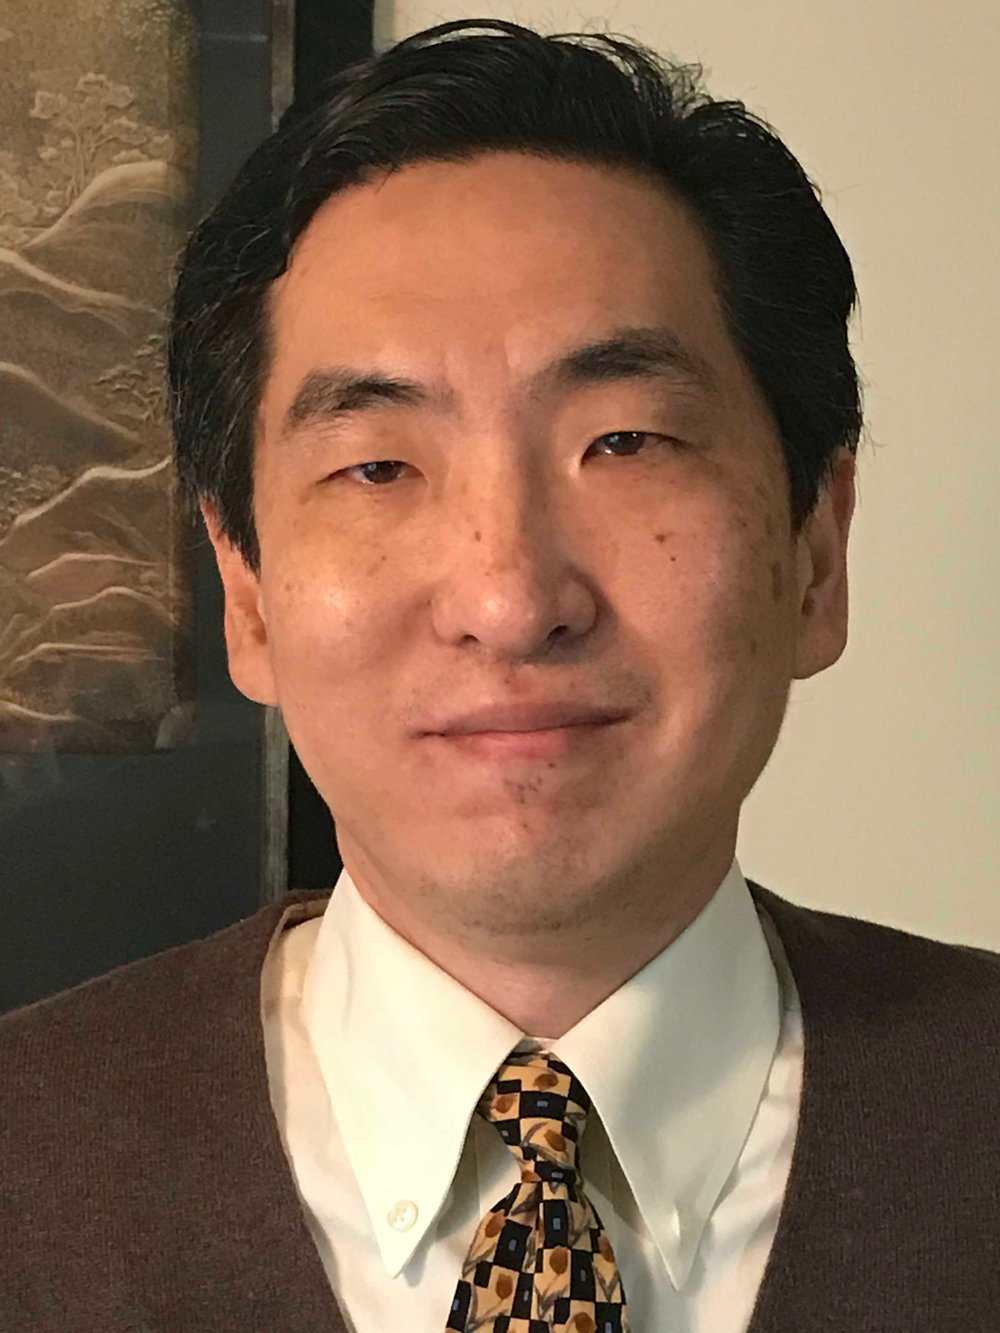 Professor Reginald Oh - Professor at Cleveland Marshall College of LawForthcoming article: Immigrants, Dehumanization and Equal Protection